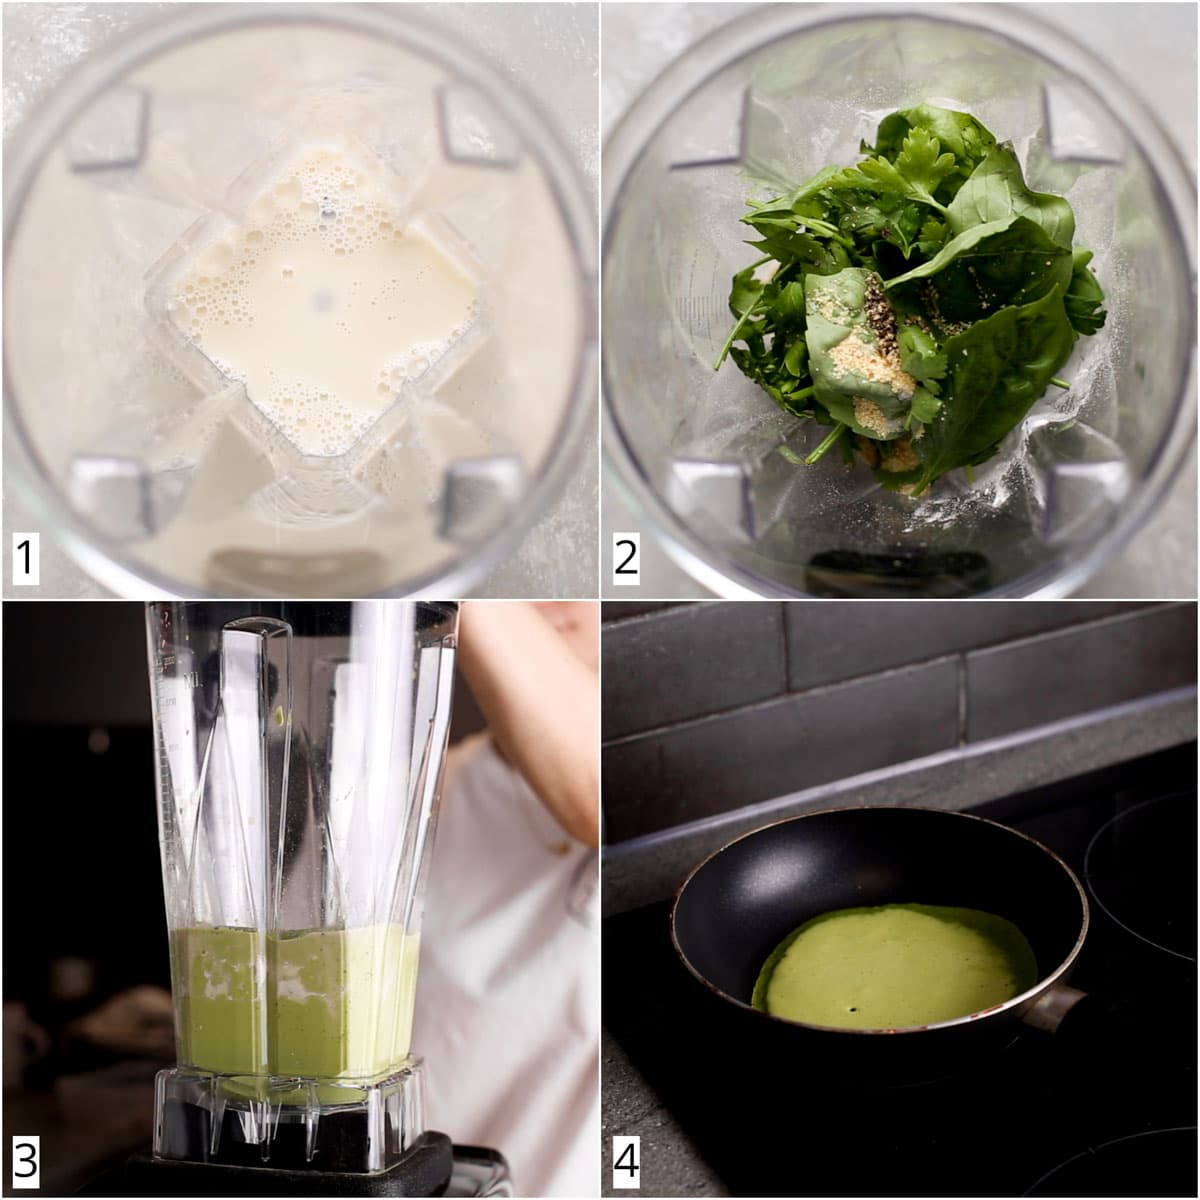 A collage of four images showing the four steps in making green crepes.